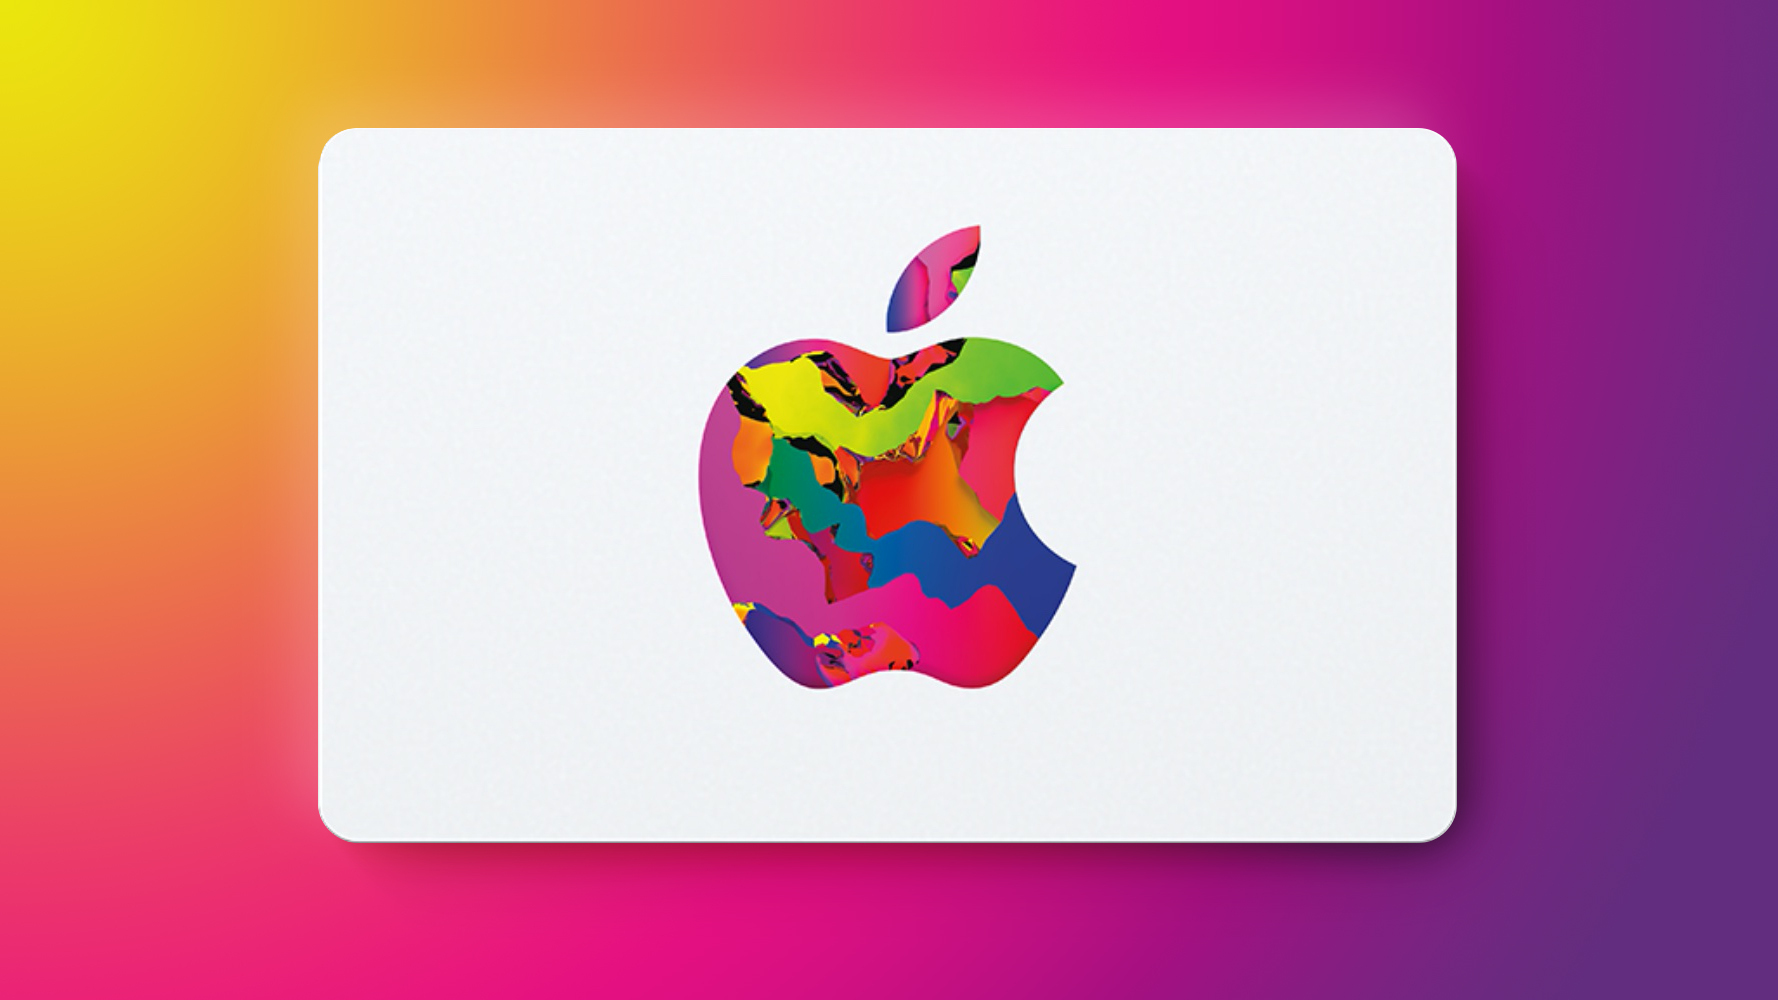 Deals: Get $10 Amazon Credit When Purchasing a $100 Apple Gift Card